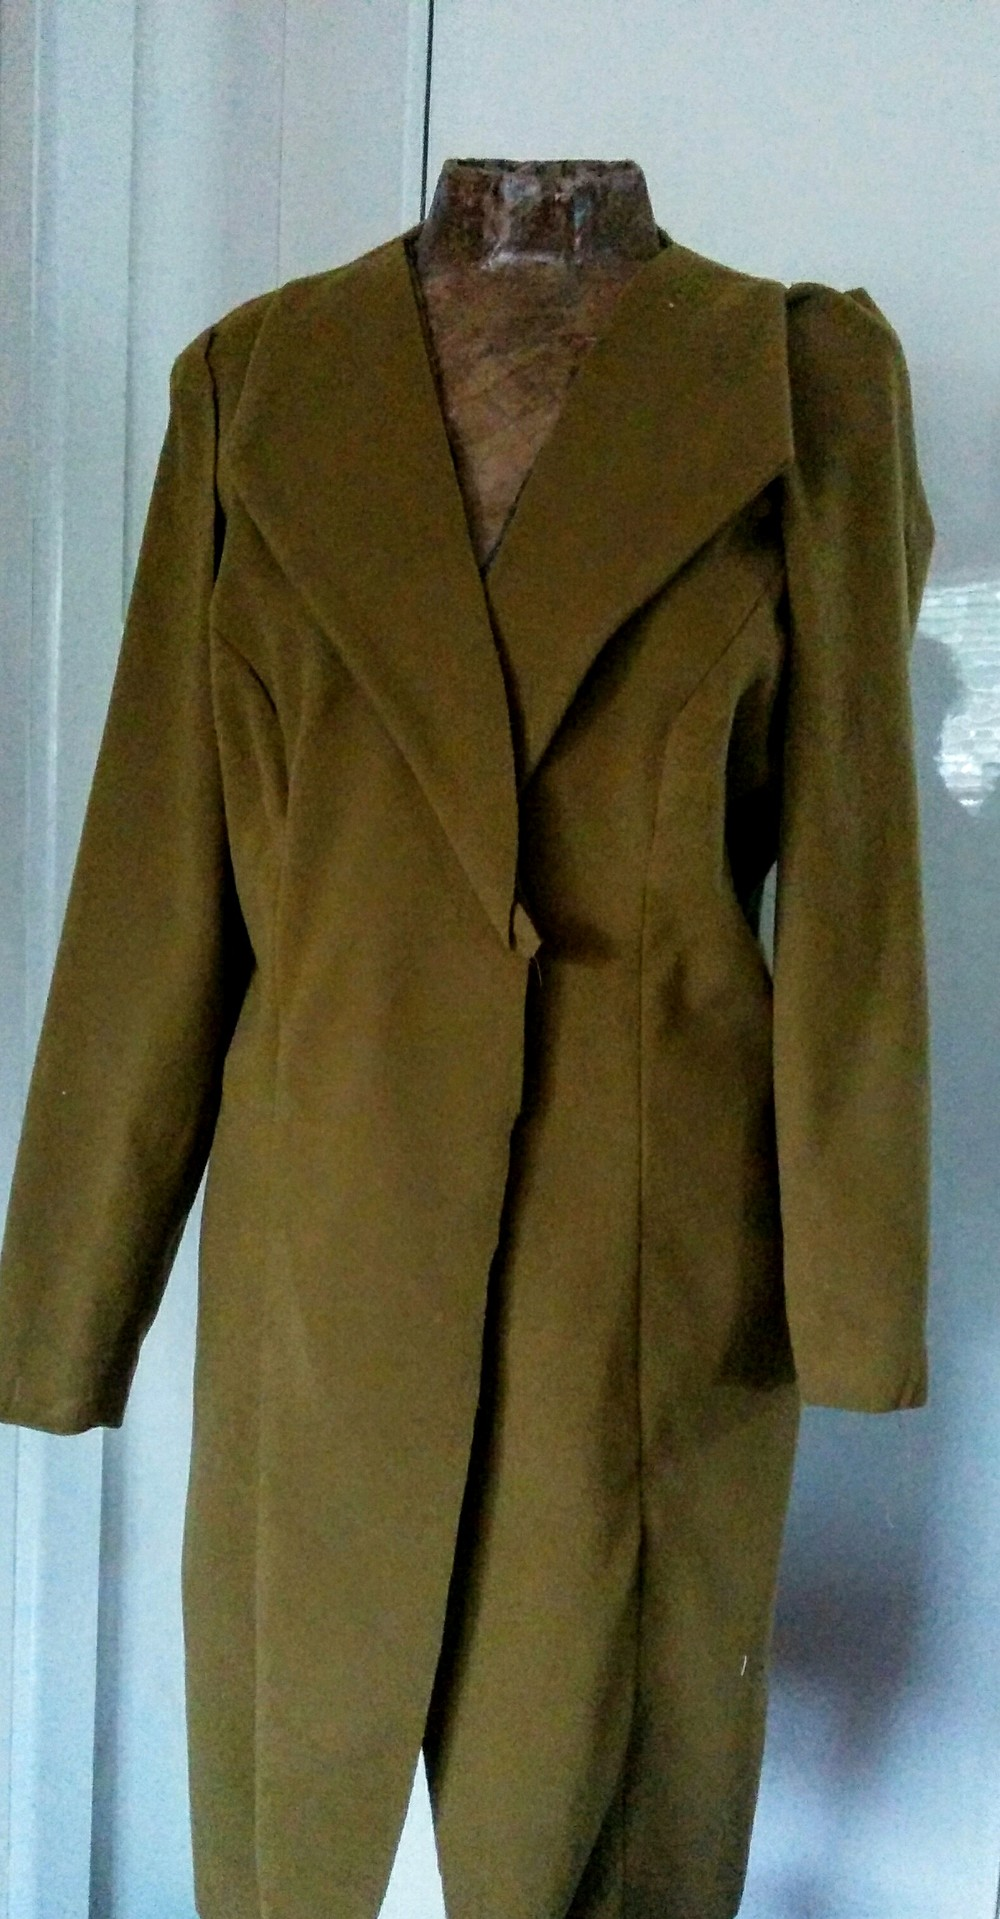 The Coat that was to be The Hero piece but sadly wasn't...